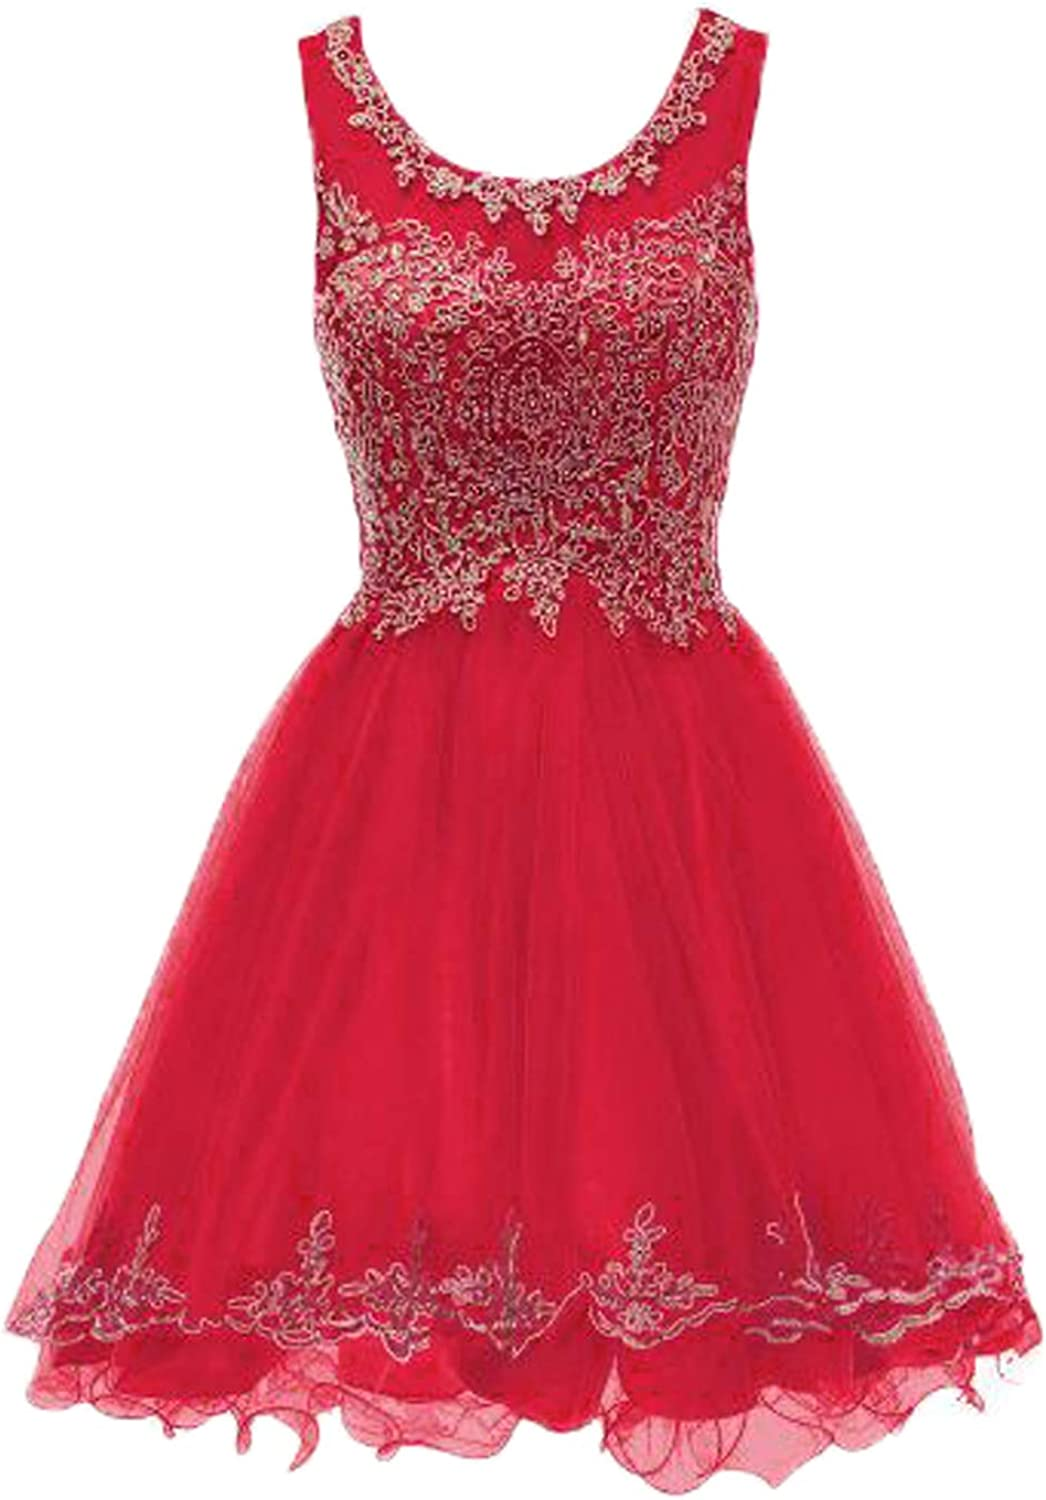 Huifany Short gold Lace Prom Homecoming Dresses Appliques Beads Prom Party Gowns